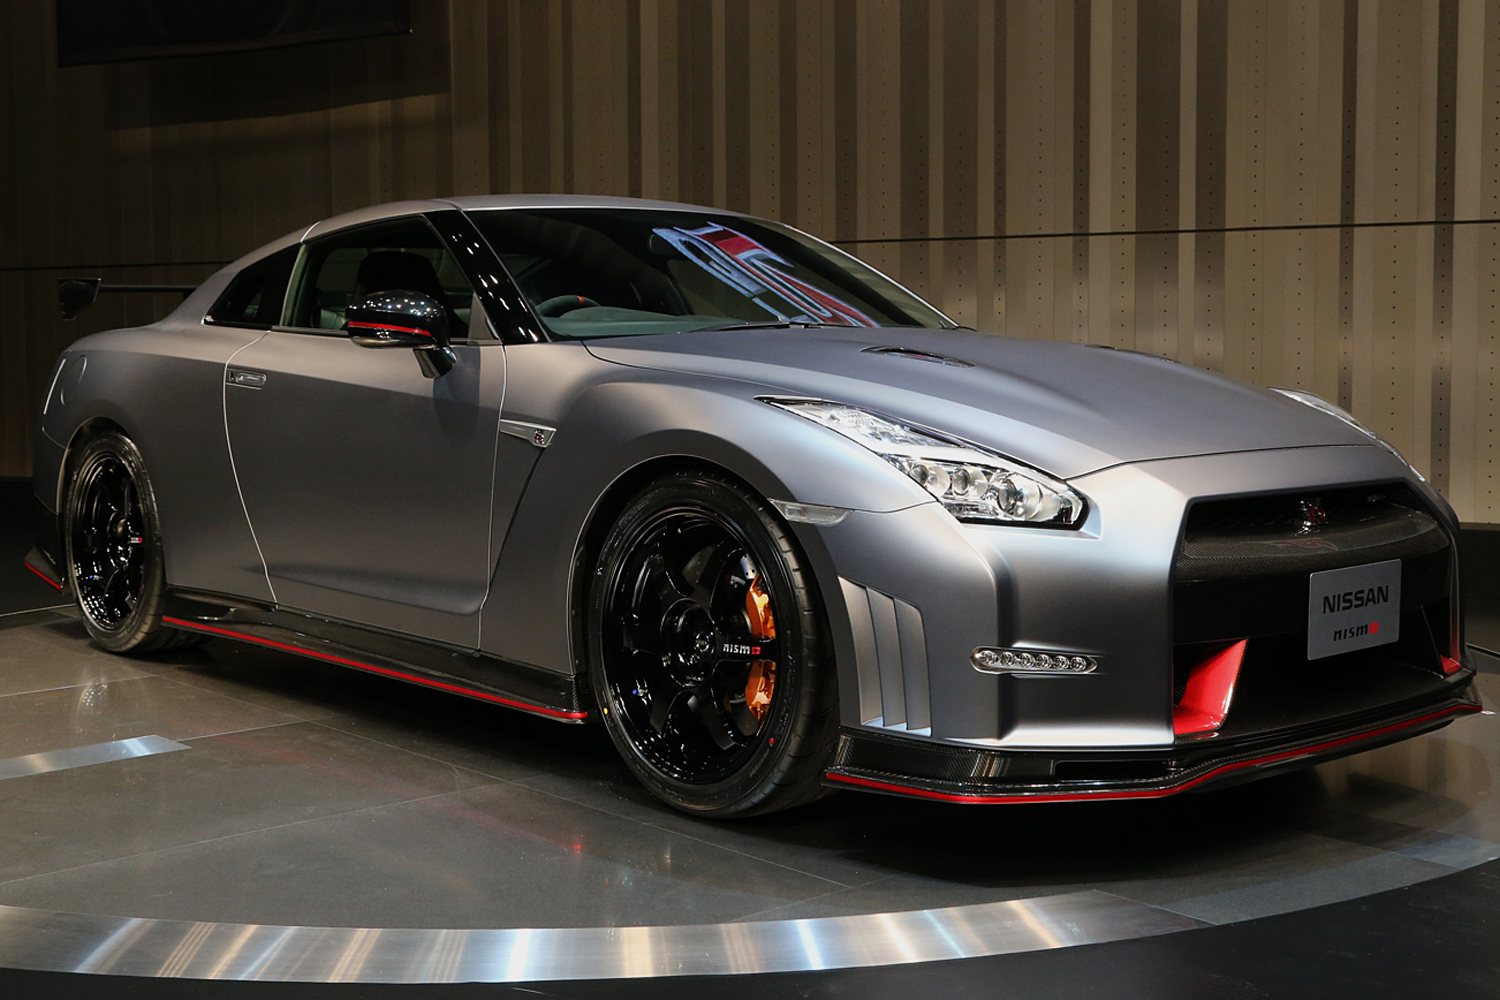 2015 Nissan GT-R Nismo Has a Staggering 600 HP - Motor Trend